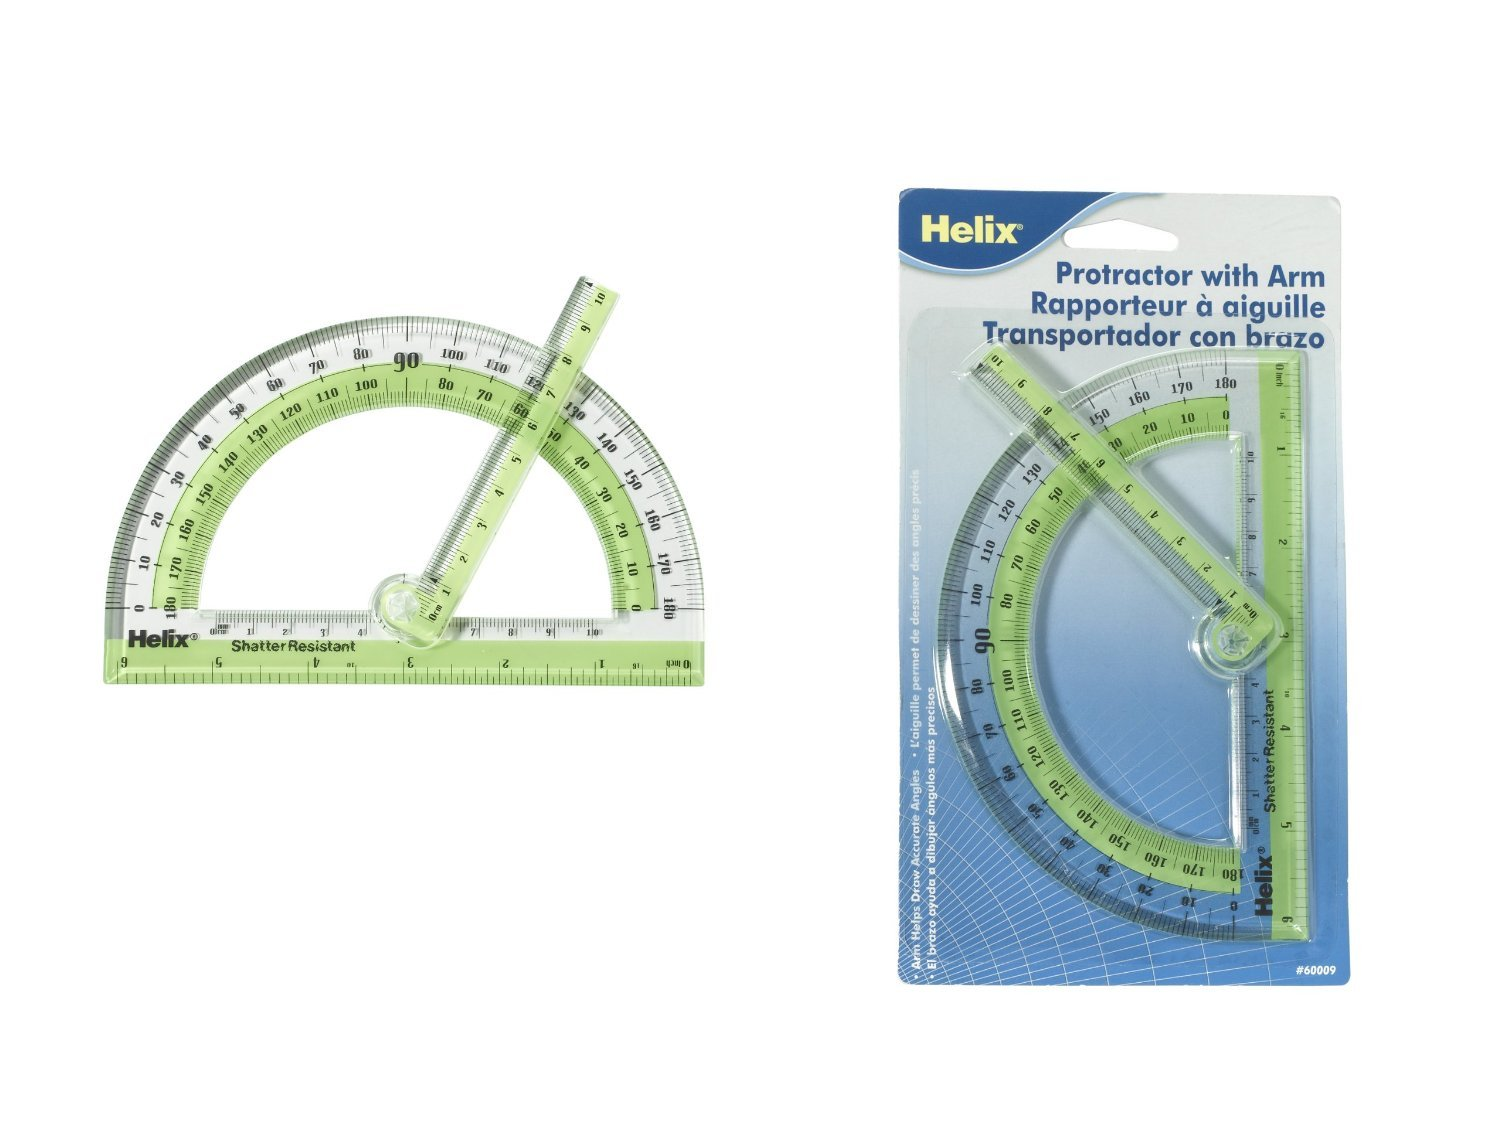 6 Pack 6 Swing Arm Protractor (Product Catalog: Tools) by Helix Group PLC (Image #1)